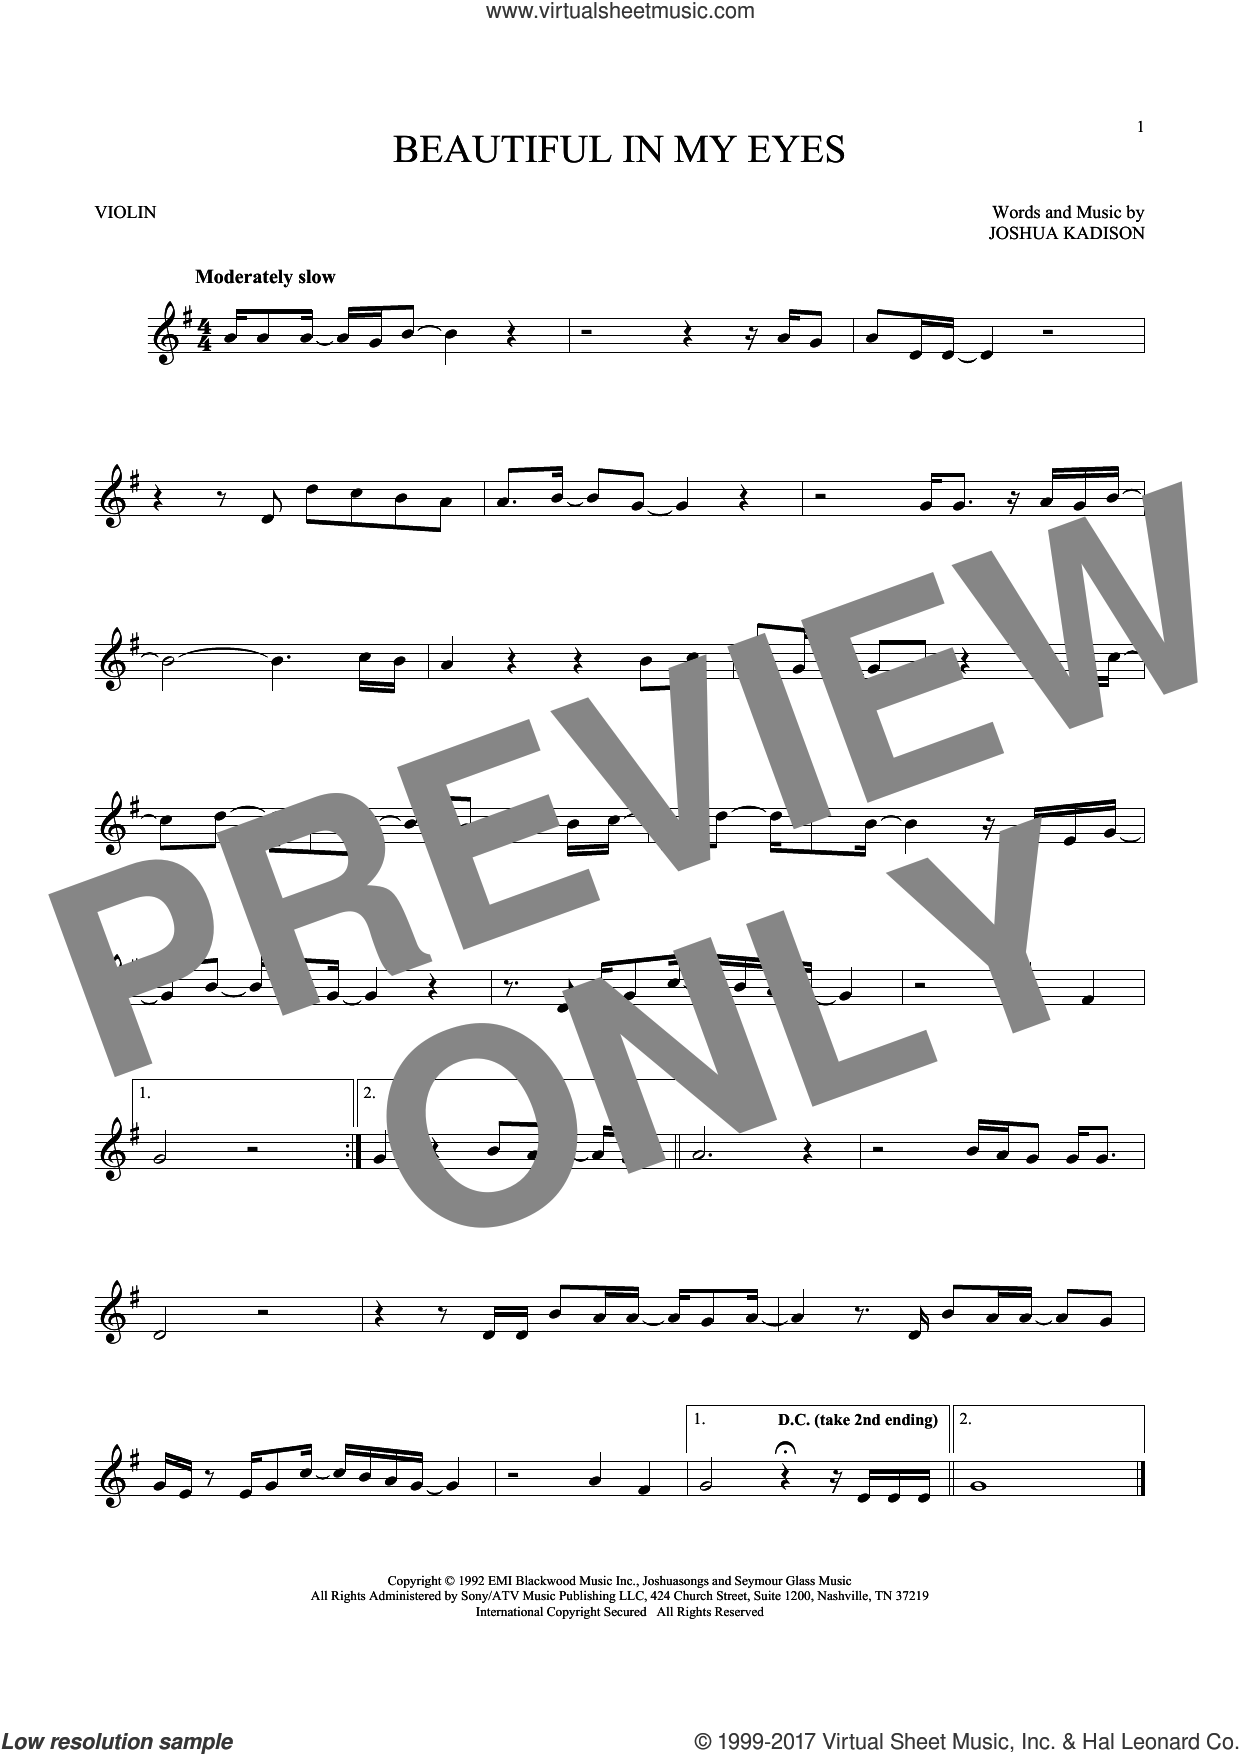 Beautiful In My Eyes sheet music for violin solo by Joshua Kadison, intermediate skill level